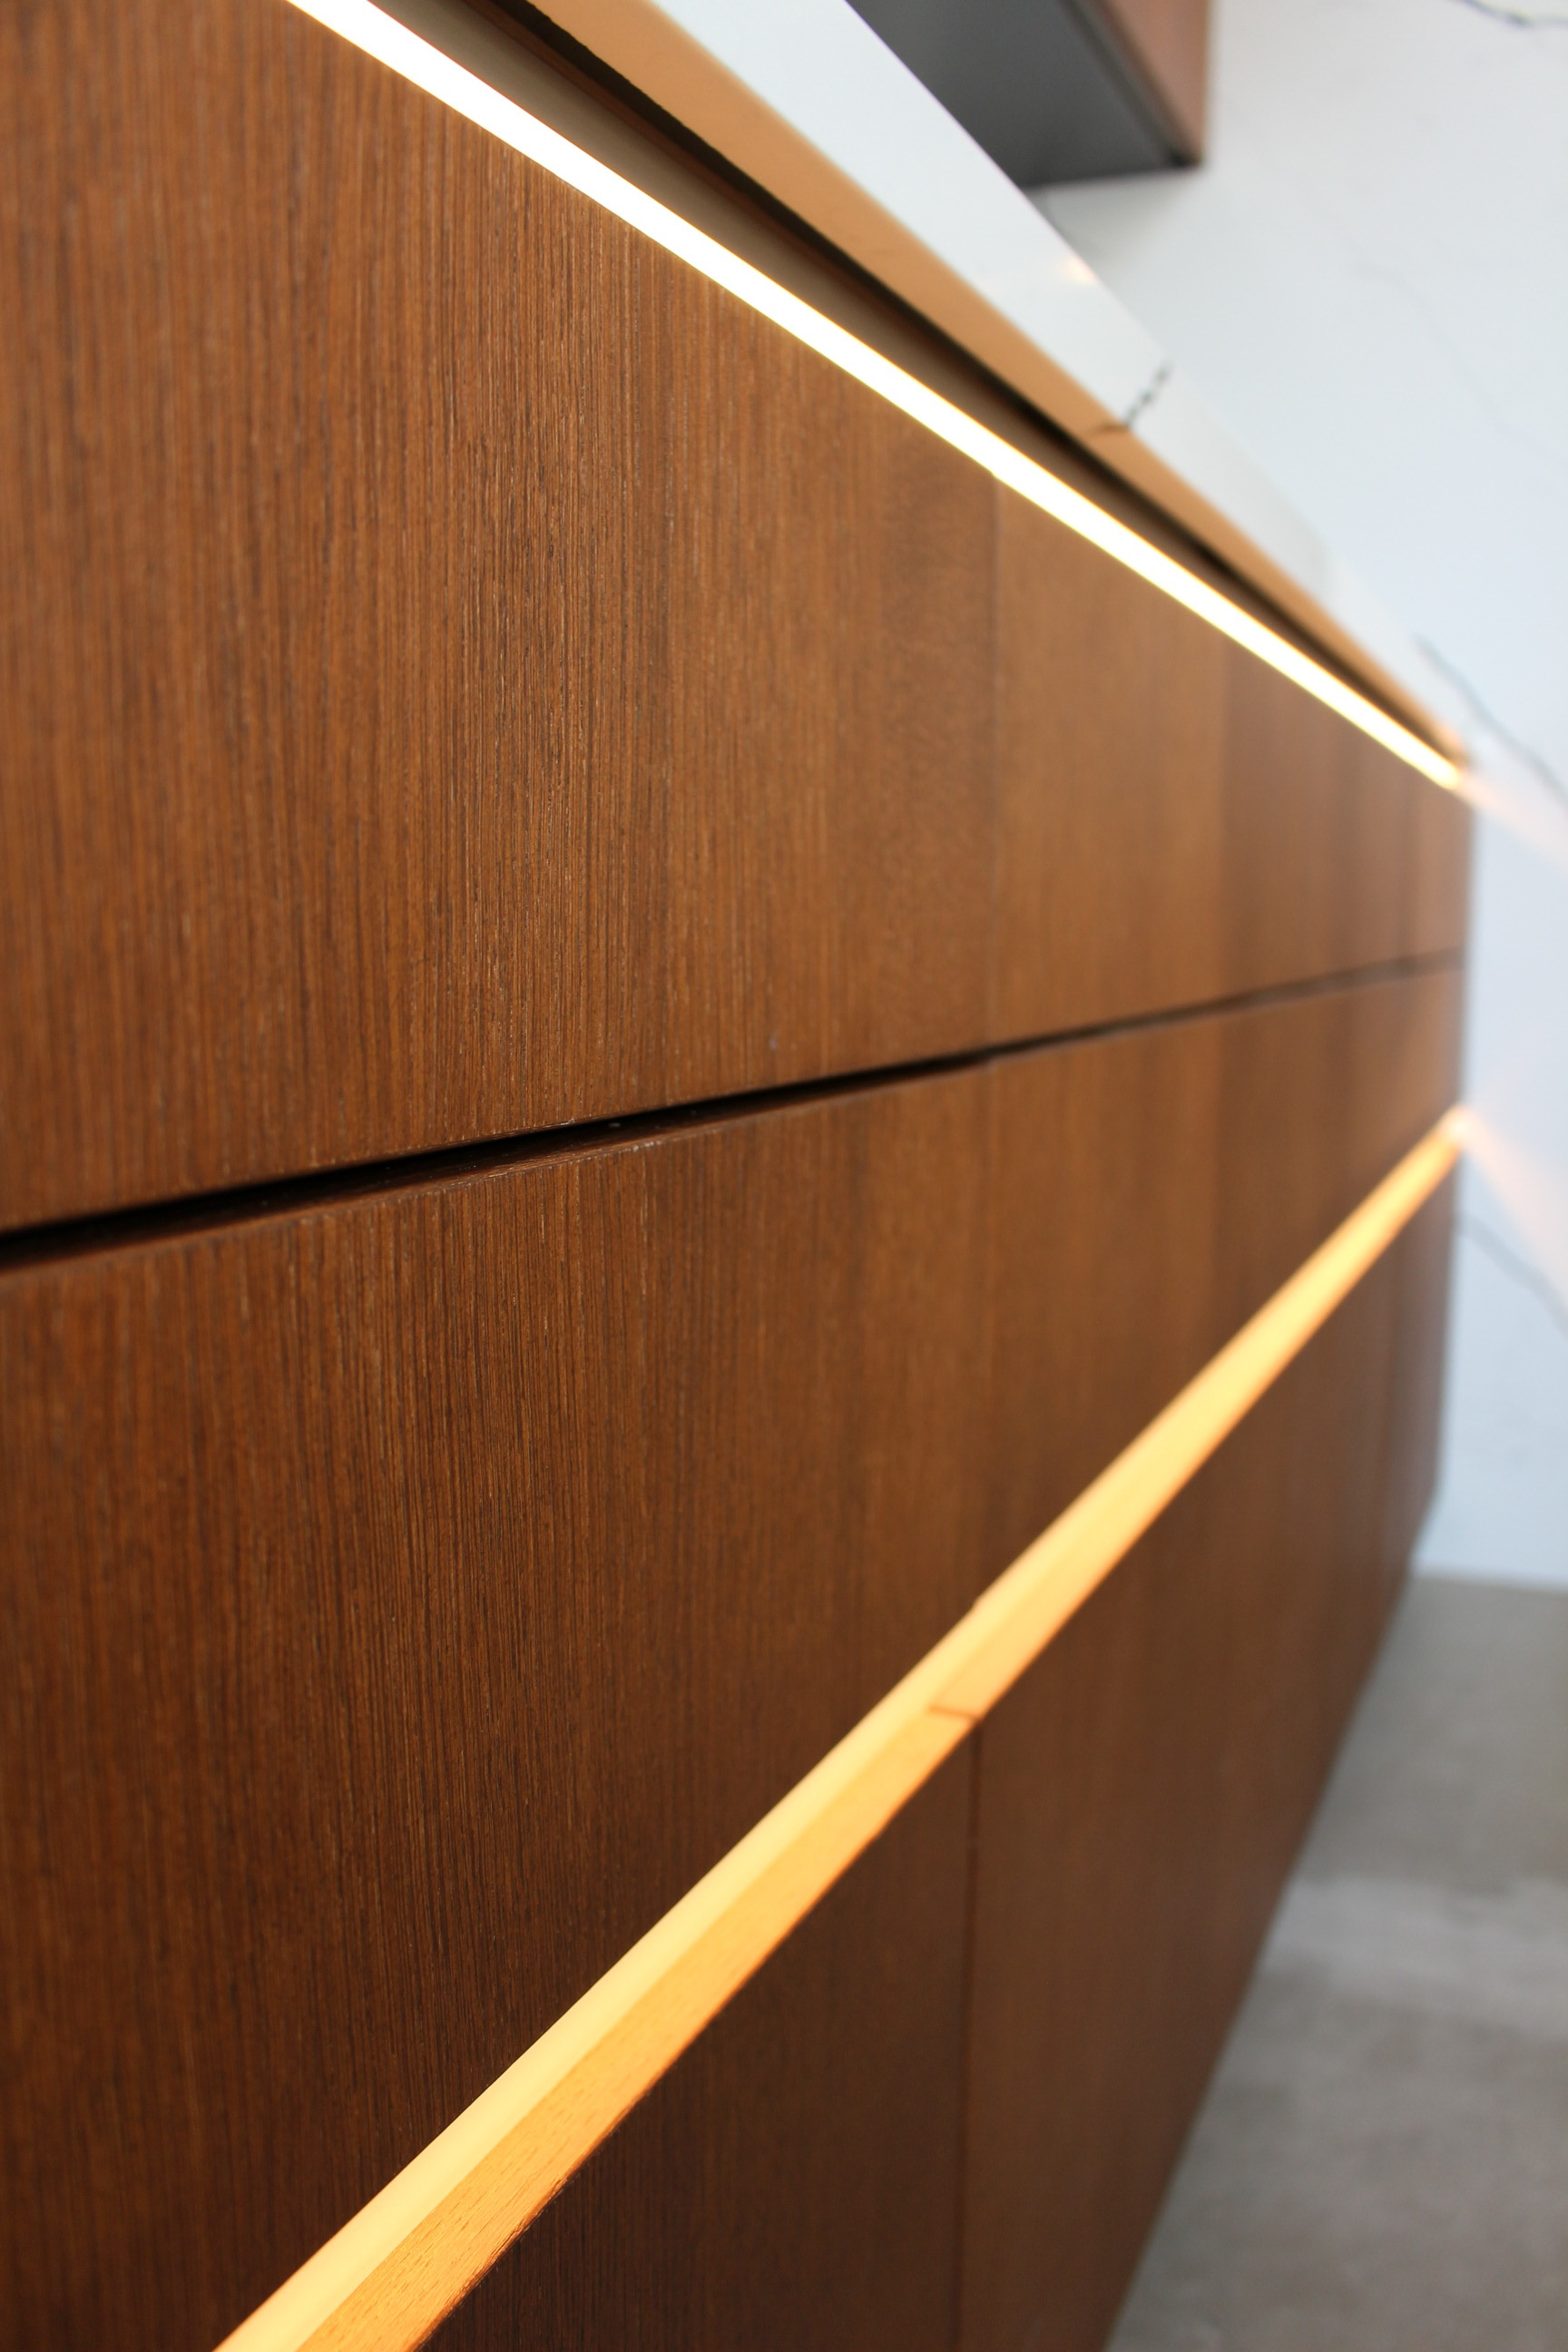 cabinet doors without handles